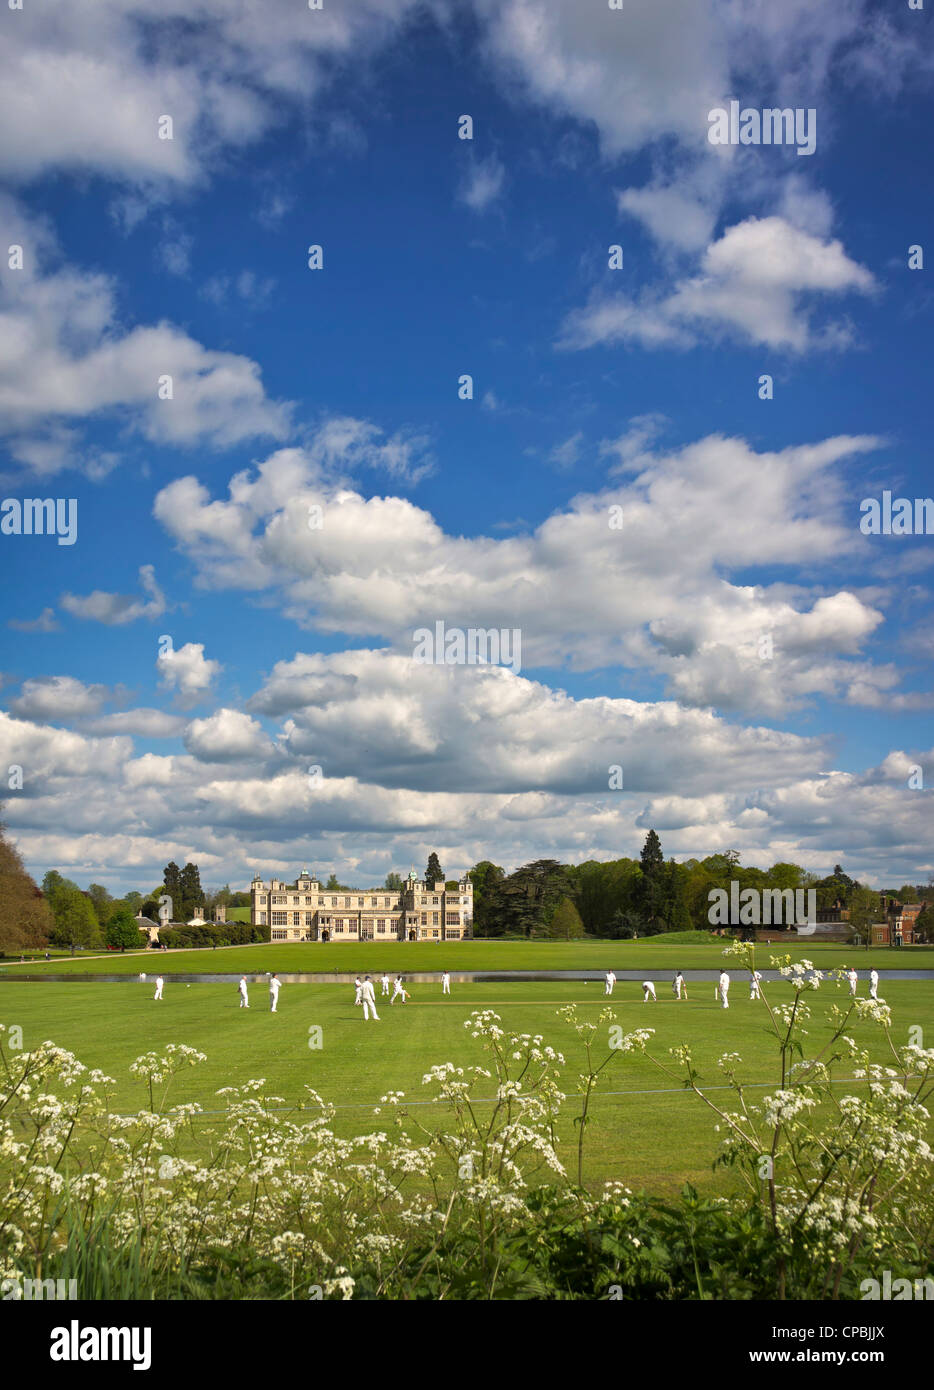 Audley End House and cricket - Stock Image